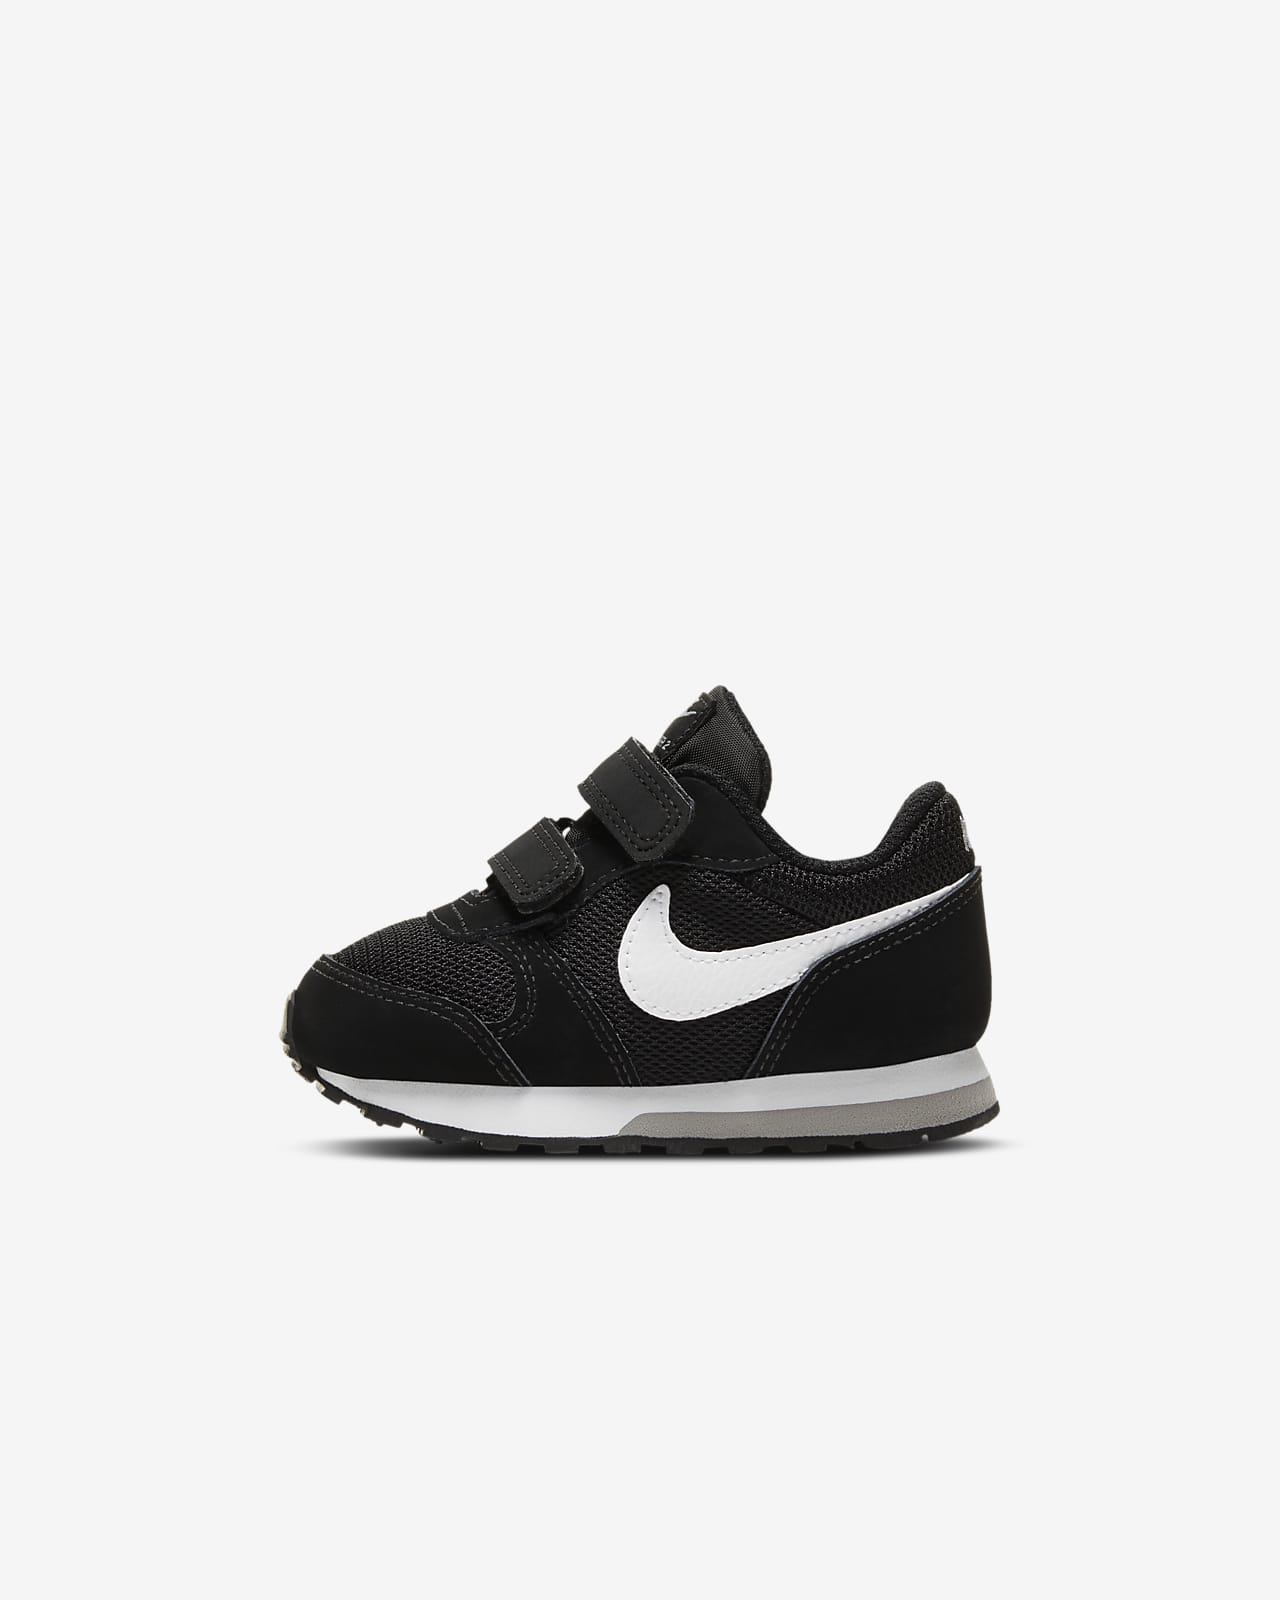 Cerebro muy agradable Arco iris  Nike MD Runner 2 Baby and Toddler Shoe. Nike ID